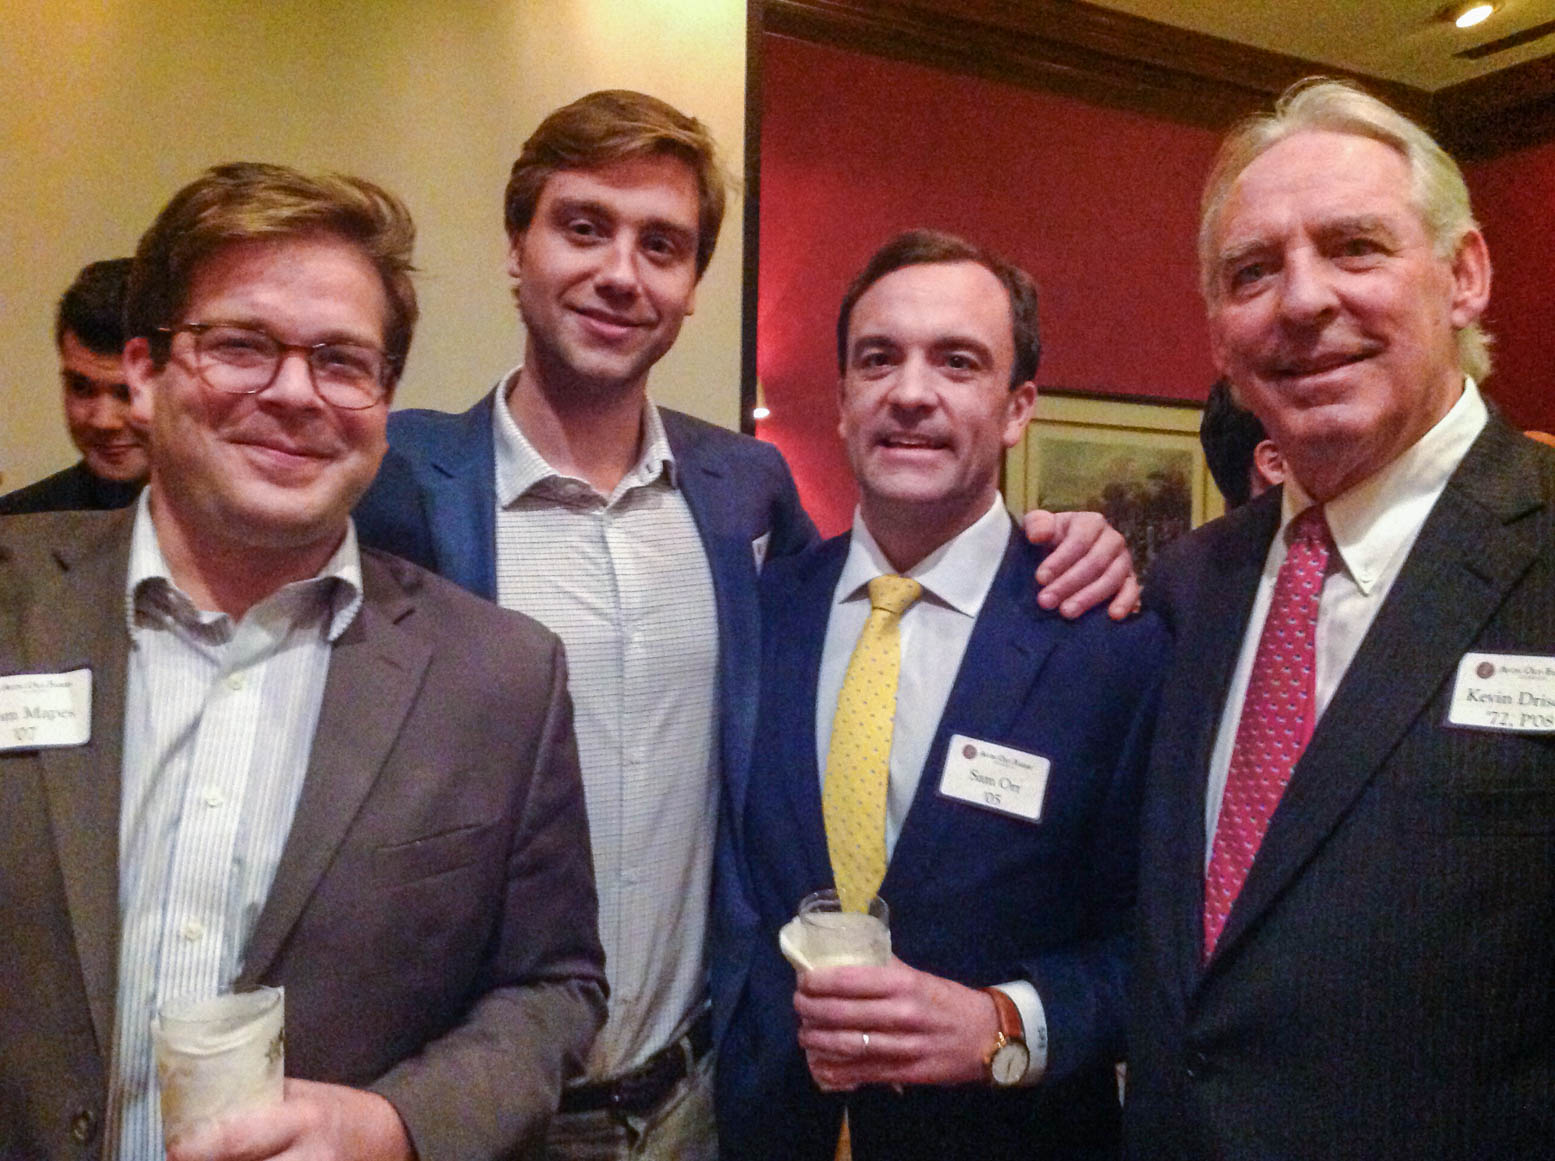 2017 Chevy Chase Reception